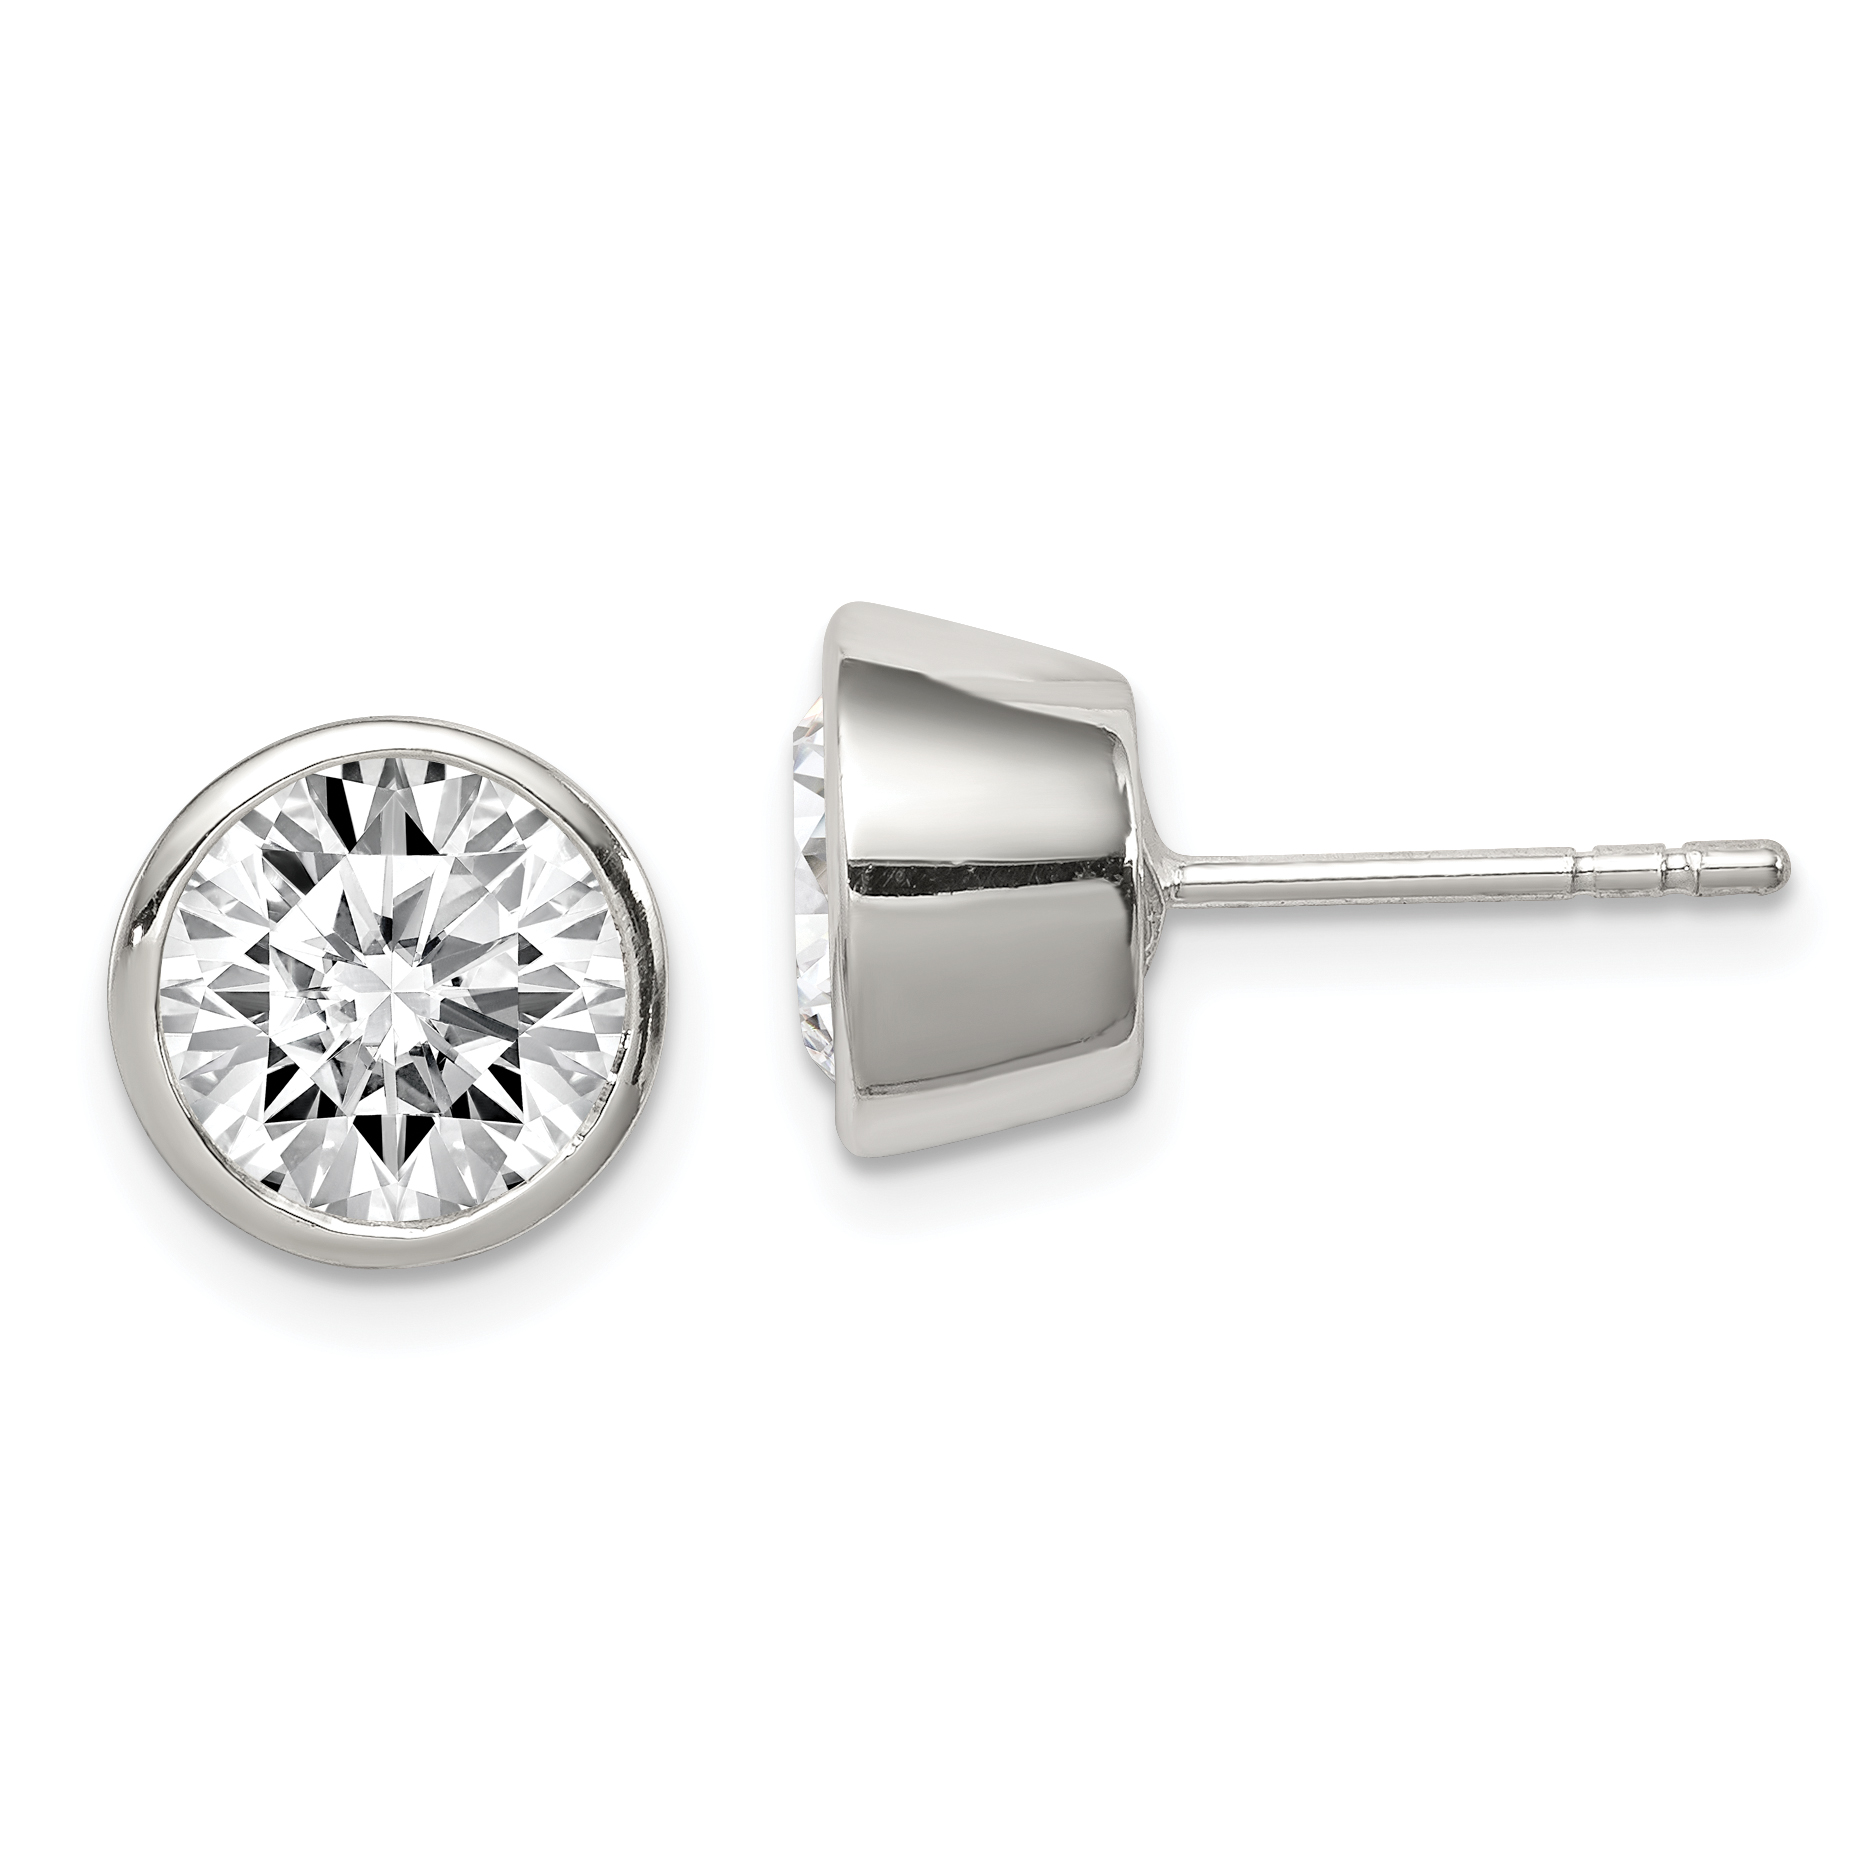 Black Sterling Silver Ear Stud Earrings White Diamond Simulant Mismatched Mens Earrings Cubic Zirconia CZ 4,6,8mm Round Single